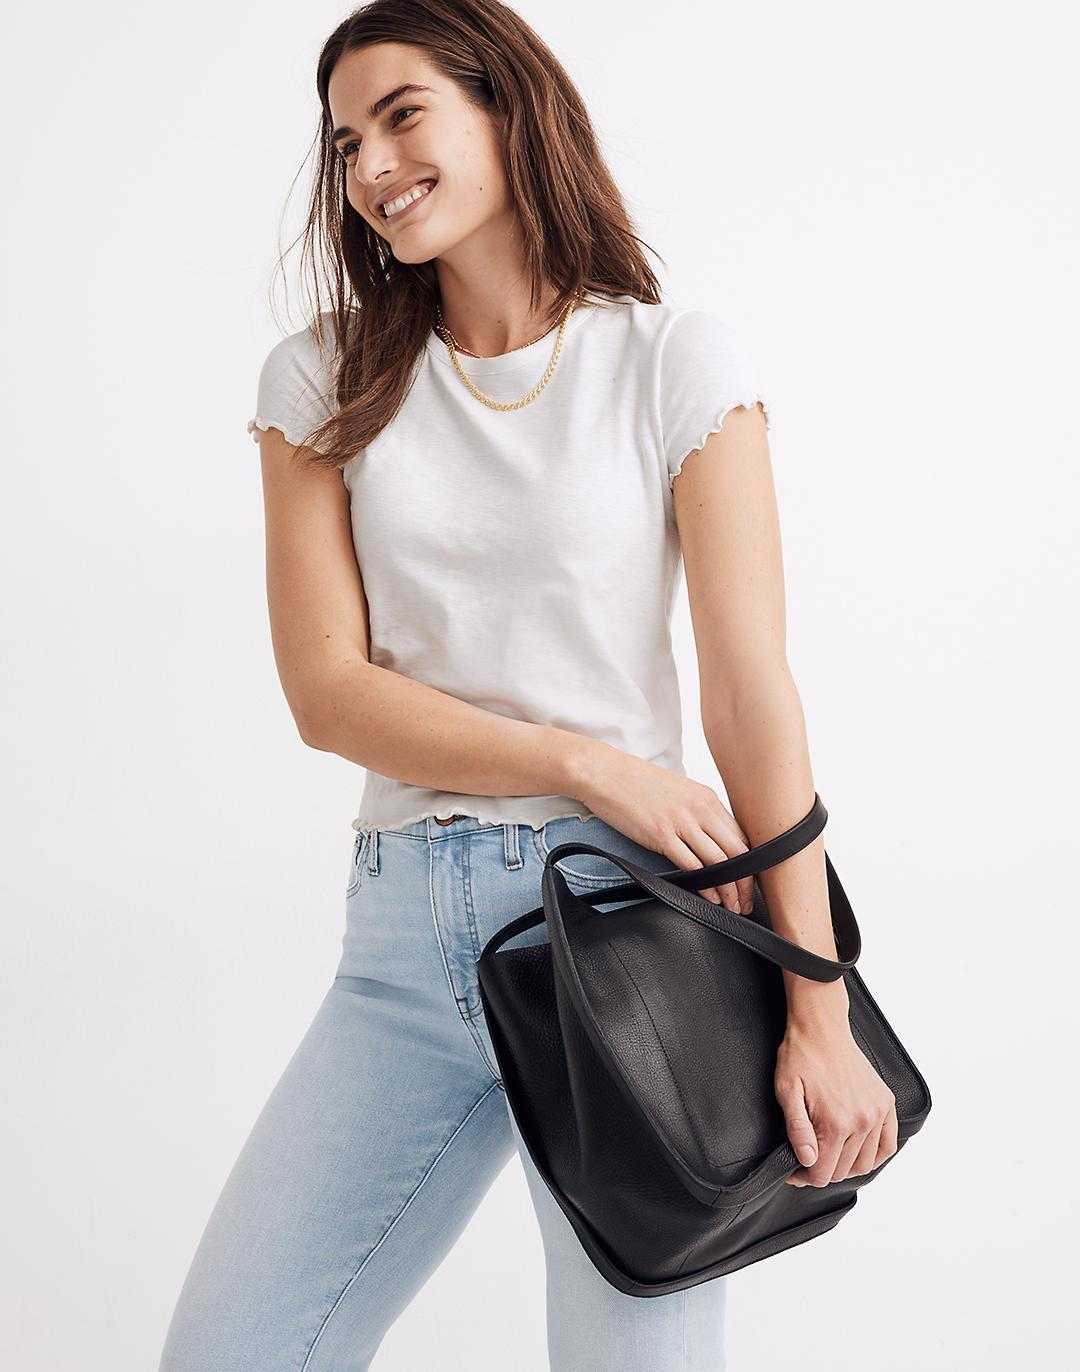 The Sydney Tote 5